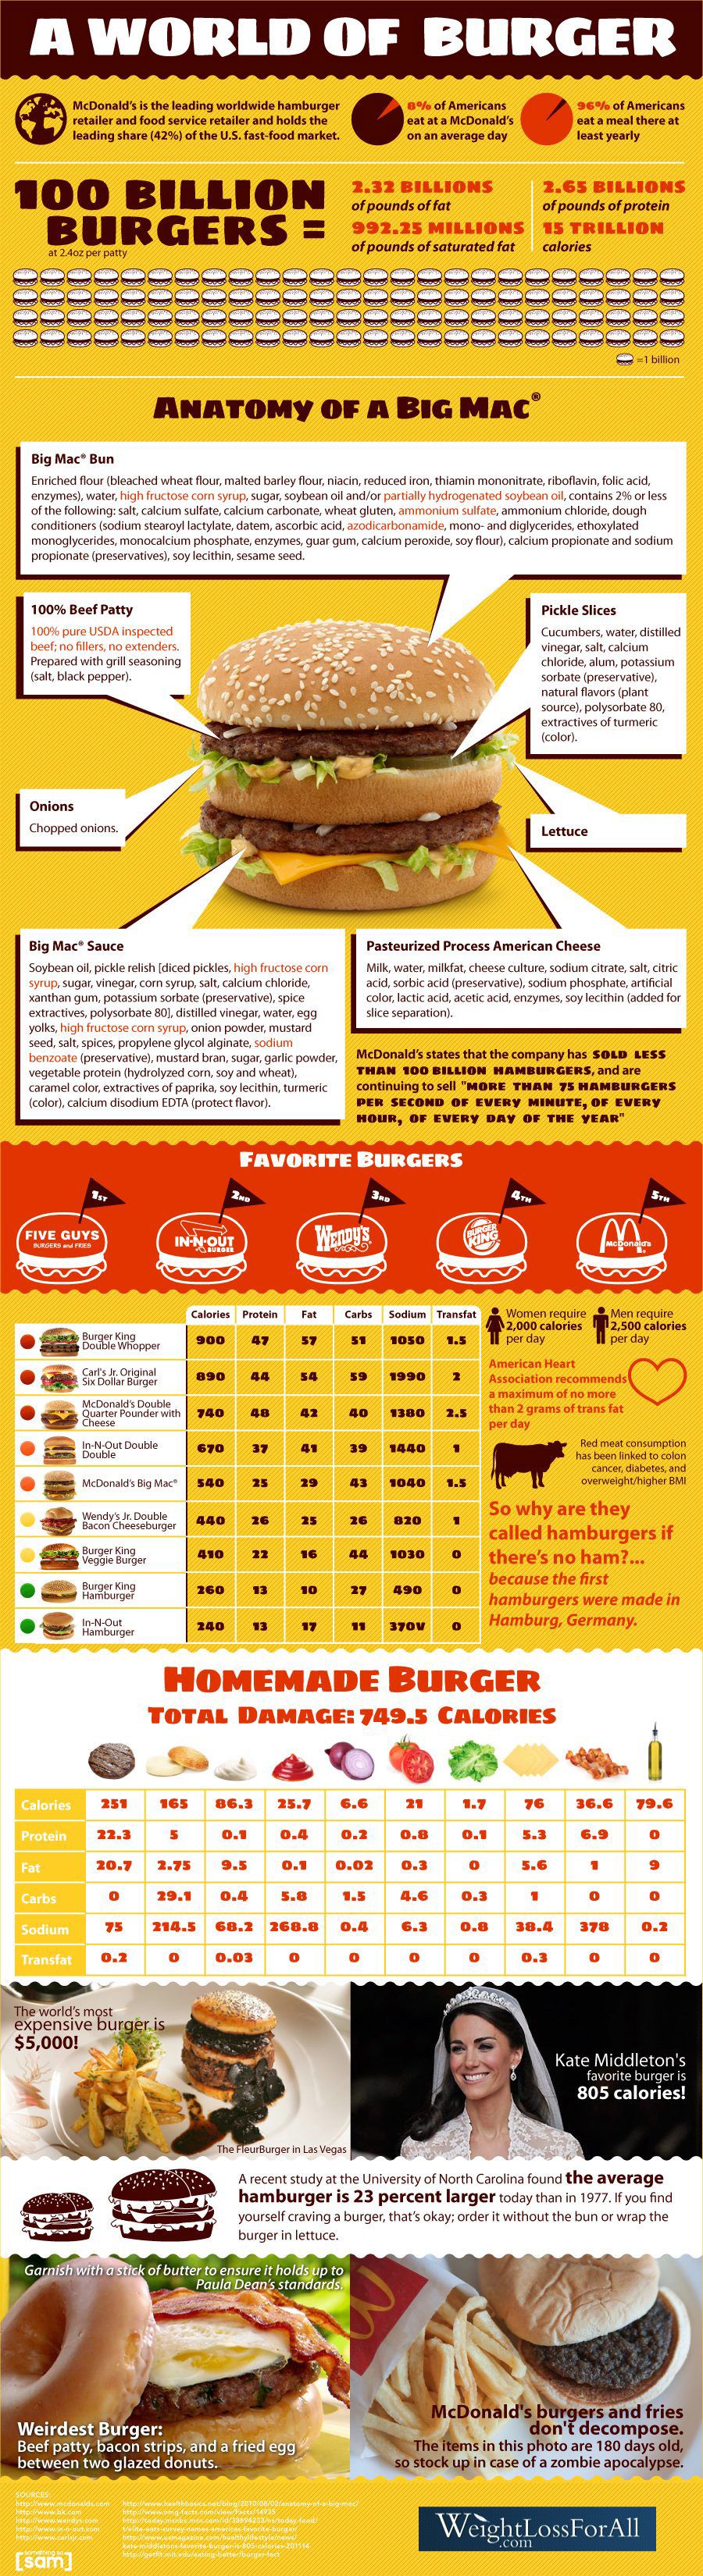 Calories in Hamburgers